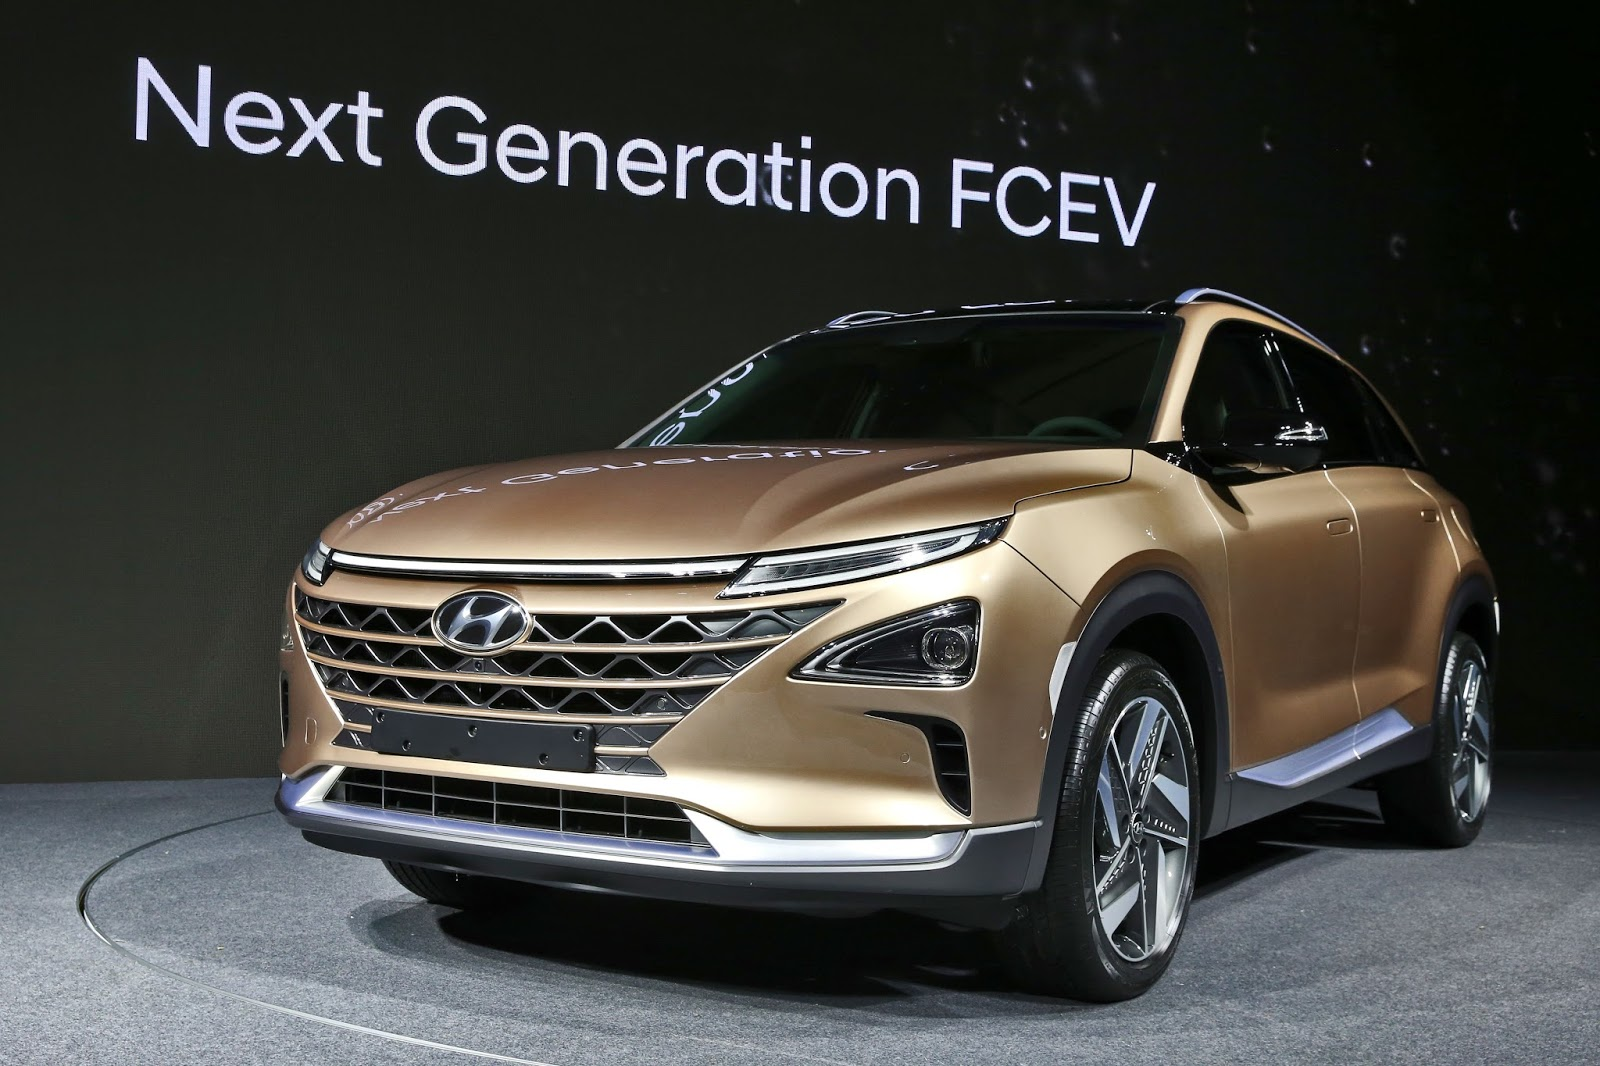 hyundai ix35 fuel cell price, hyundai ix35 fcev price, hyundai hydrogen car price, hyundai tucson fuel cell for sale, hyundai tucson fuel cell review, hyundai ix35 fuel cell specifications, hyundai fuel cell concept, hyundai ix35 wiki english